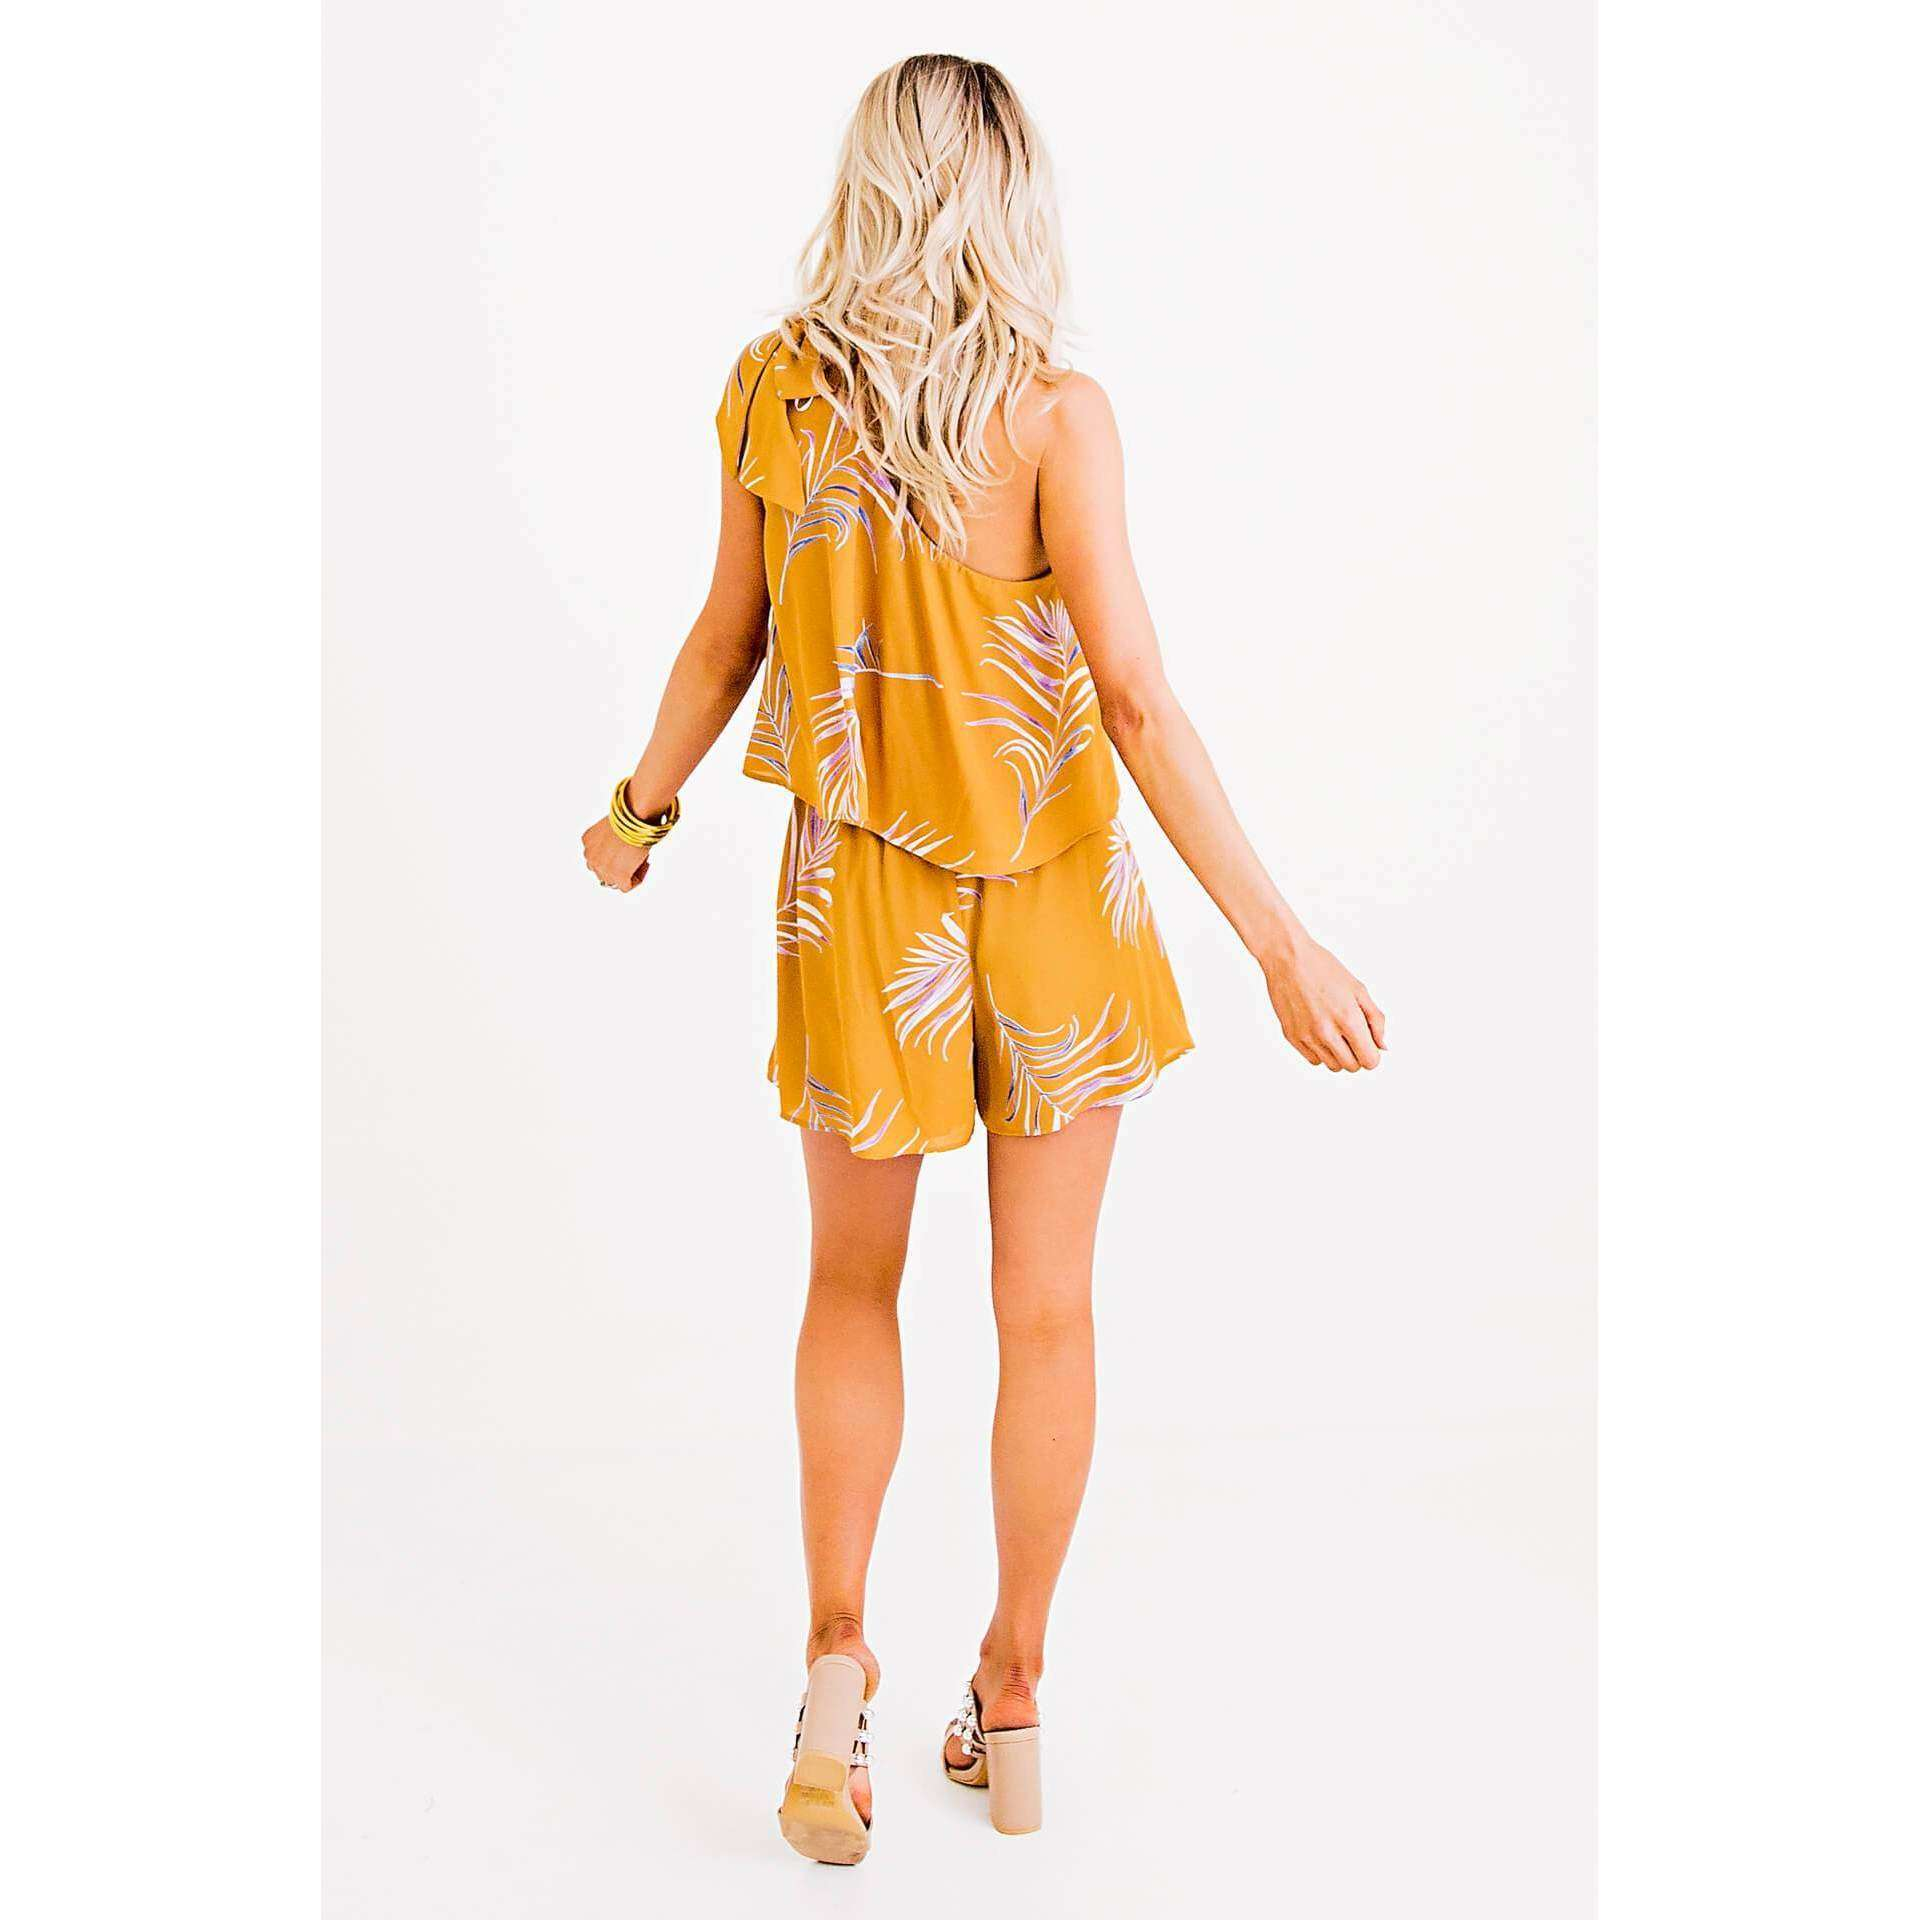 8.28 Boutique:Karlie Clothes,Karlie Clothes One Shoulder Tie Romper,Rompers